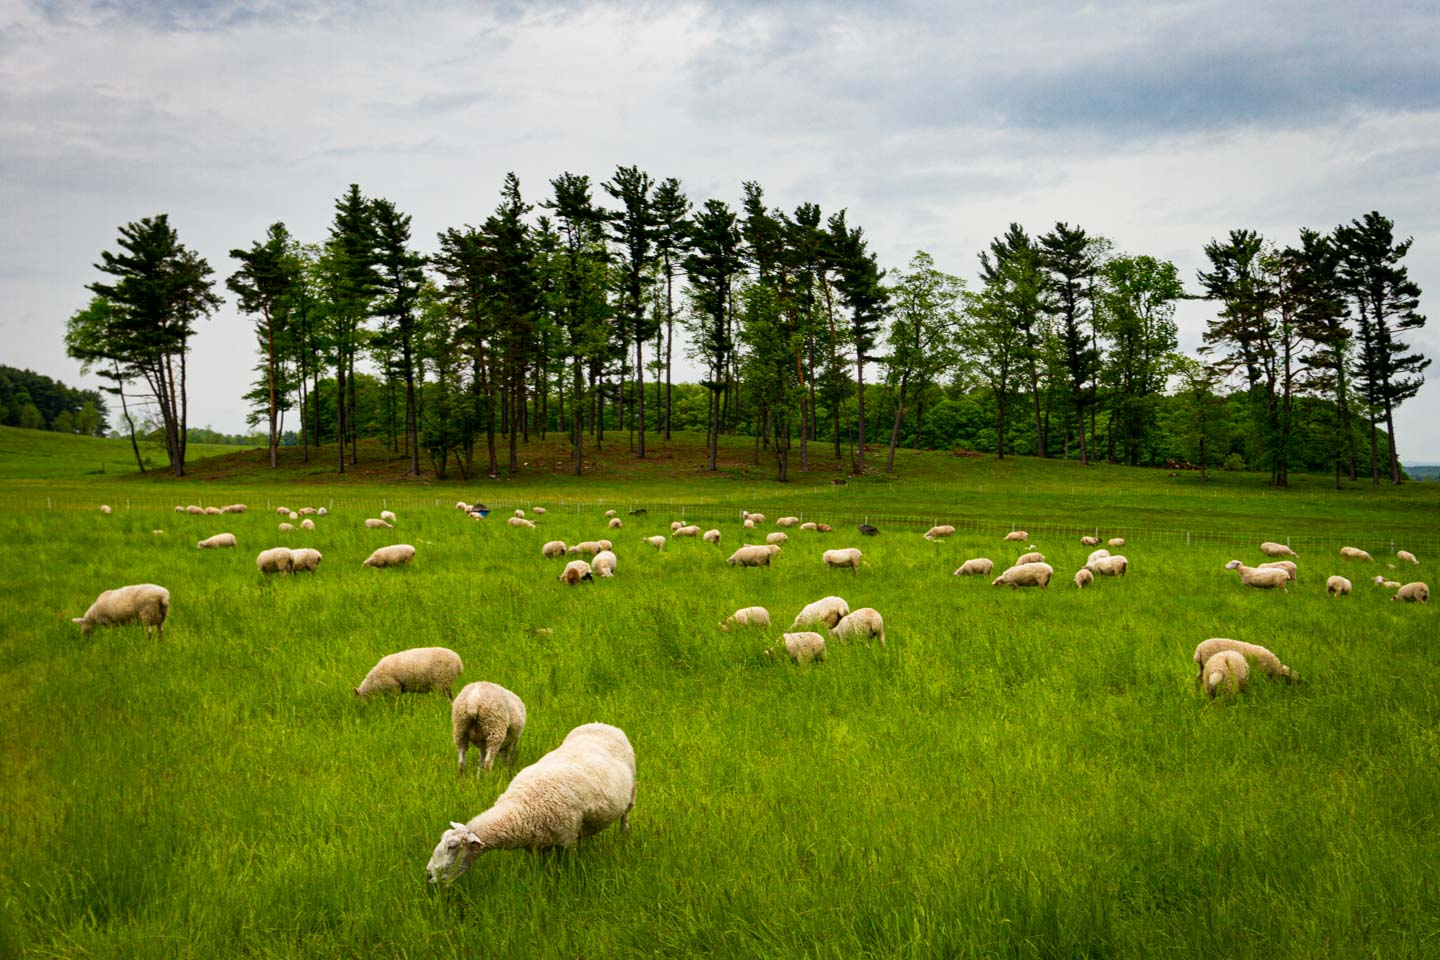 sheep grazing in field with pine trees behind them